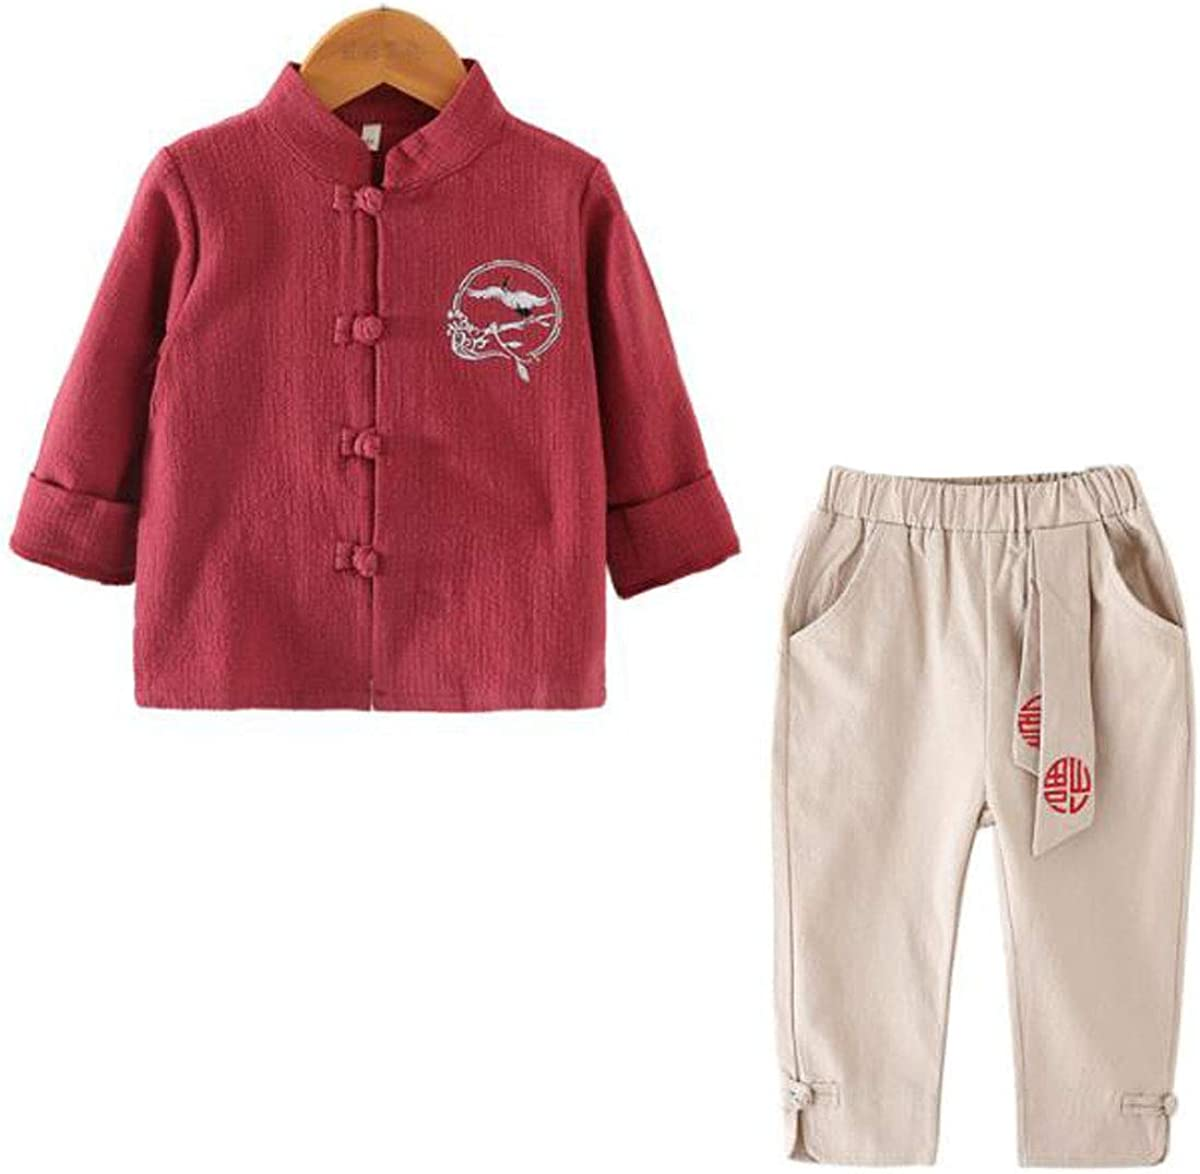 WenWen Toddler Little Boy's Chinese Casualwear Tang Suit Shirt Pants Clothing Set (red,Height 47.2